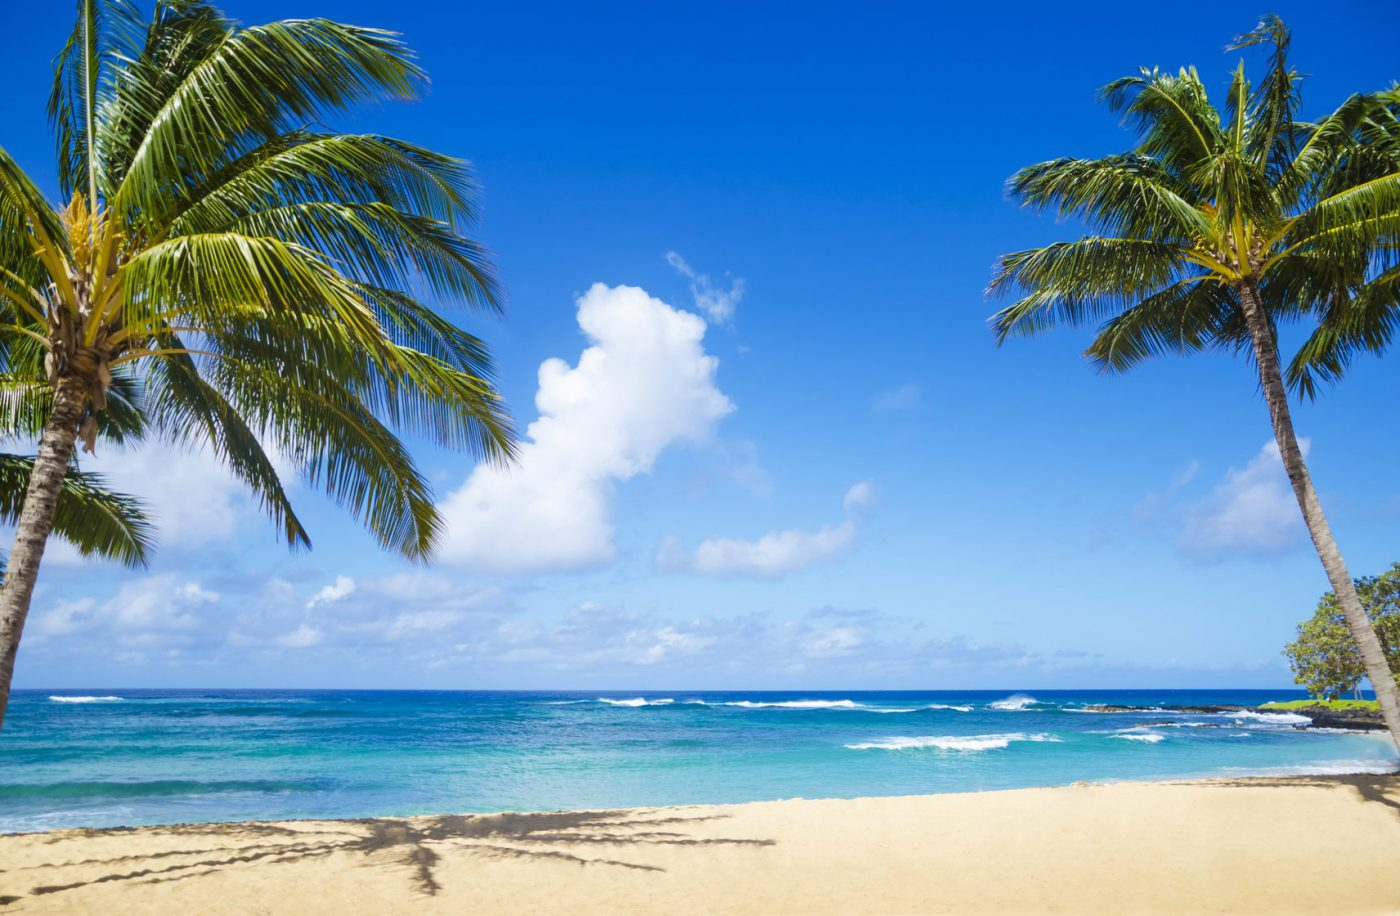 Hawaii beaches for family fun